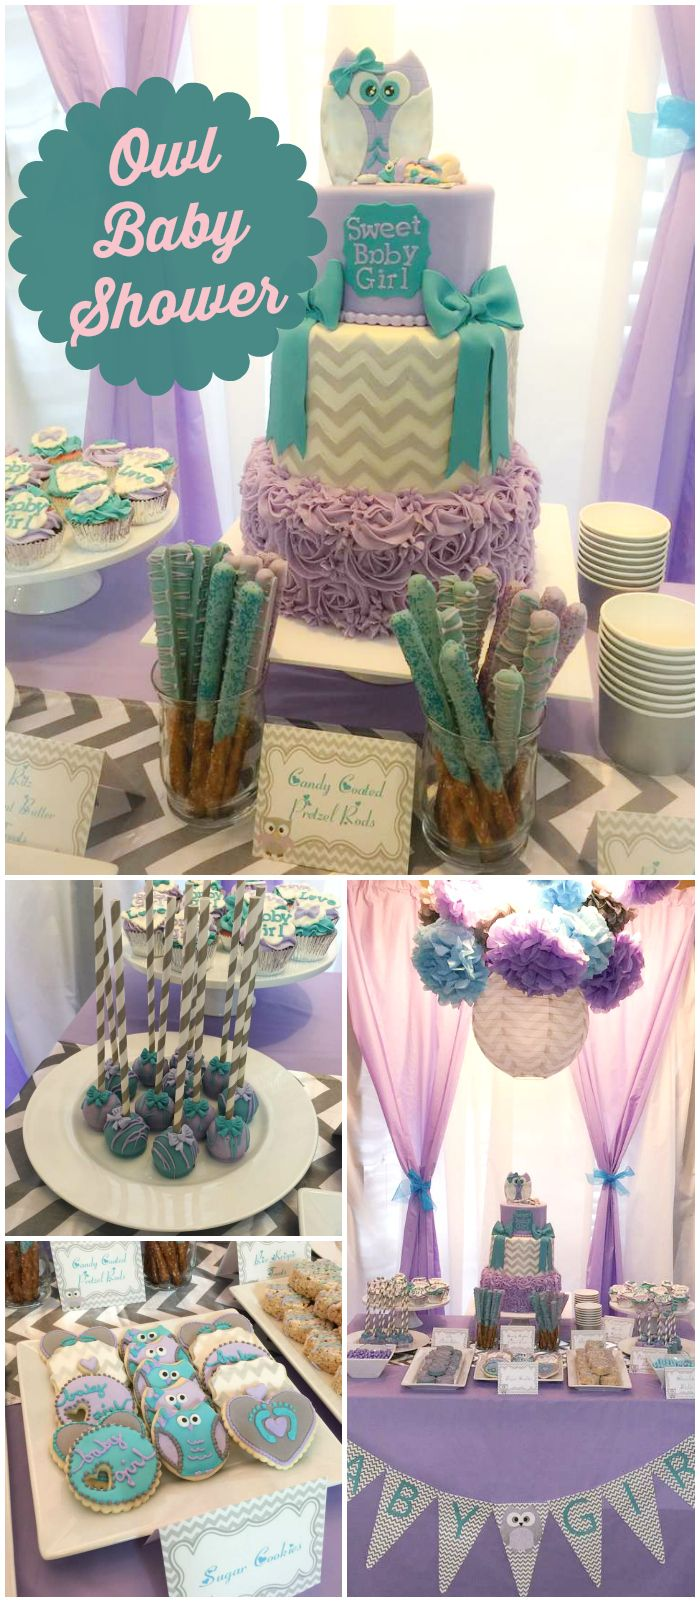 Owl Baby Shower Tasha Hs Baby Shower In 2019 Owl Party Ideas